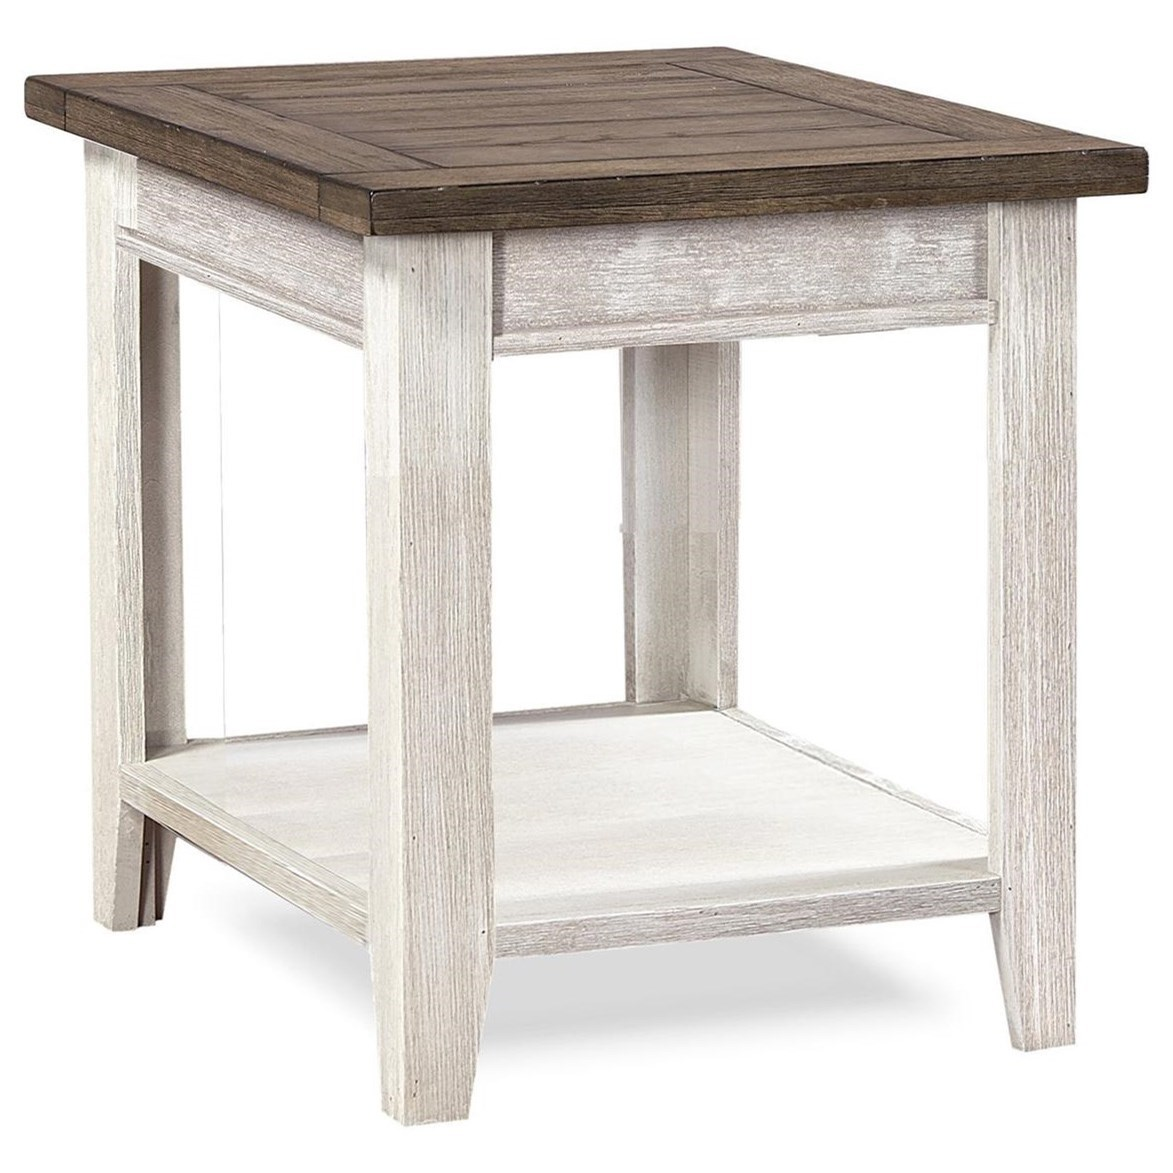 Eastport End Table by Aspenhome at Walker's Furniture